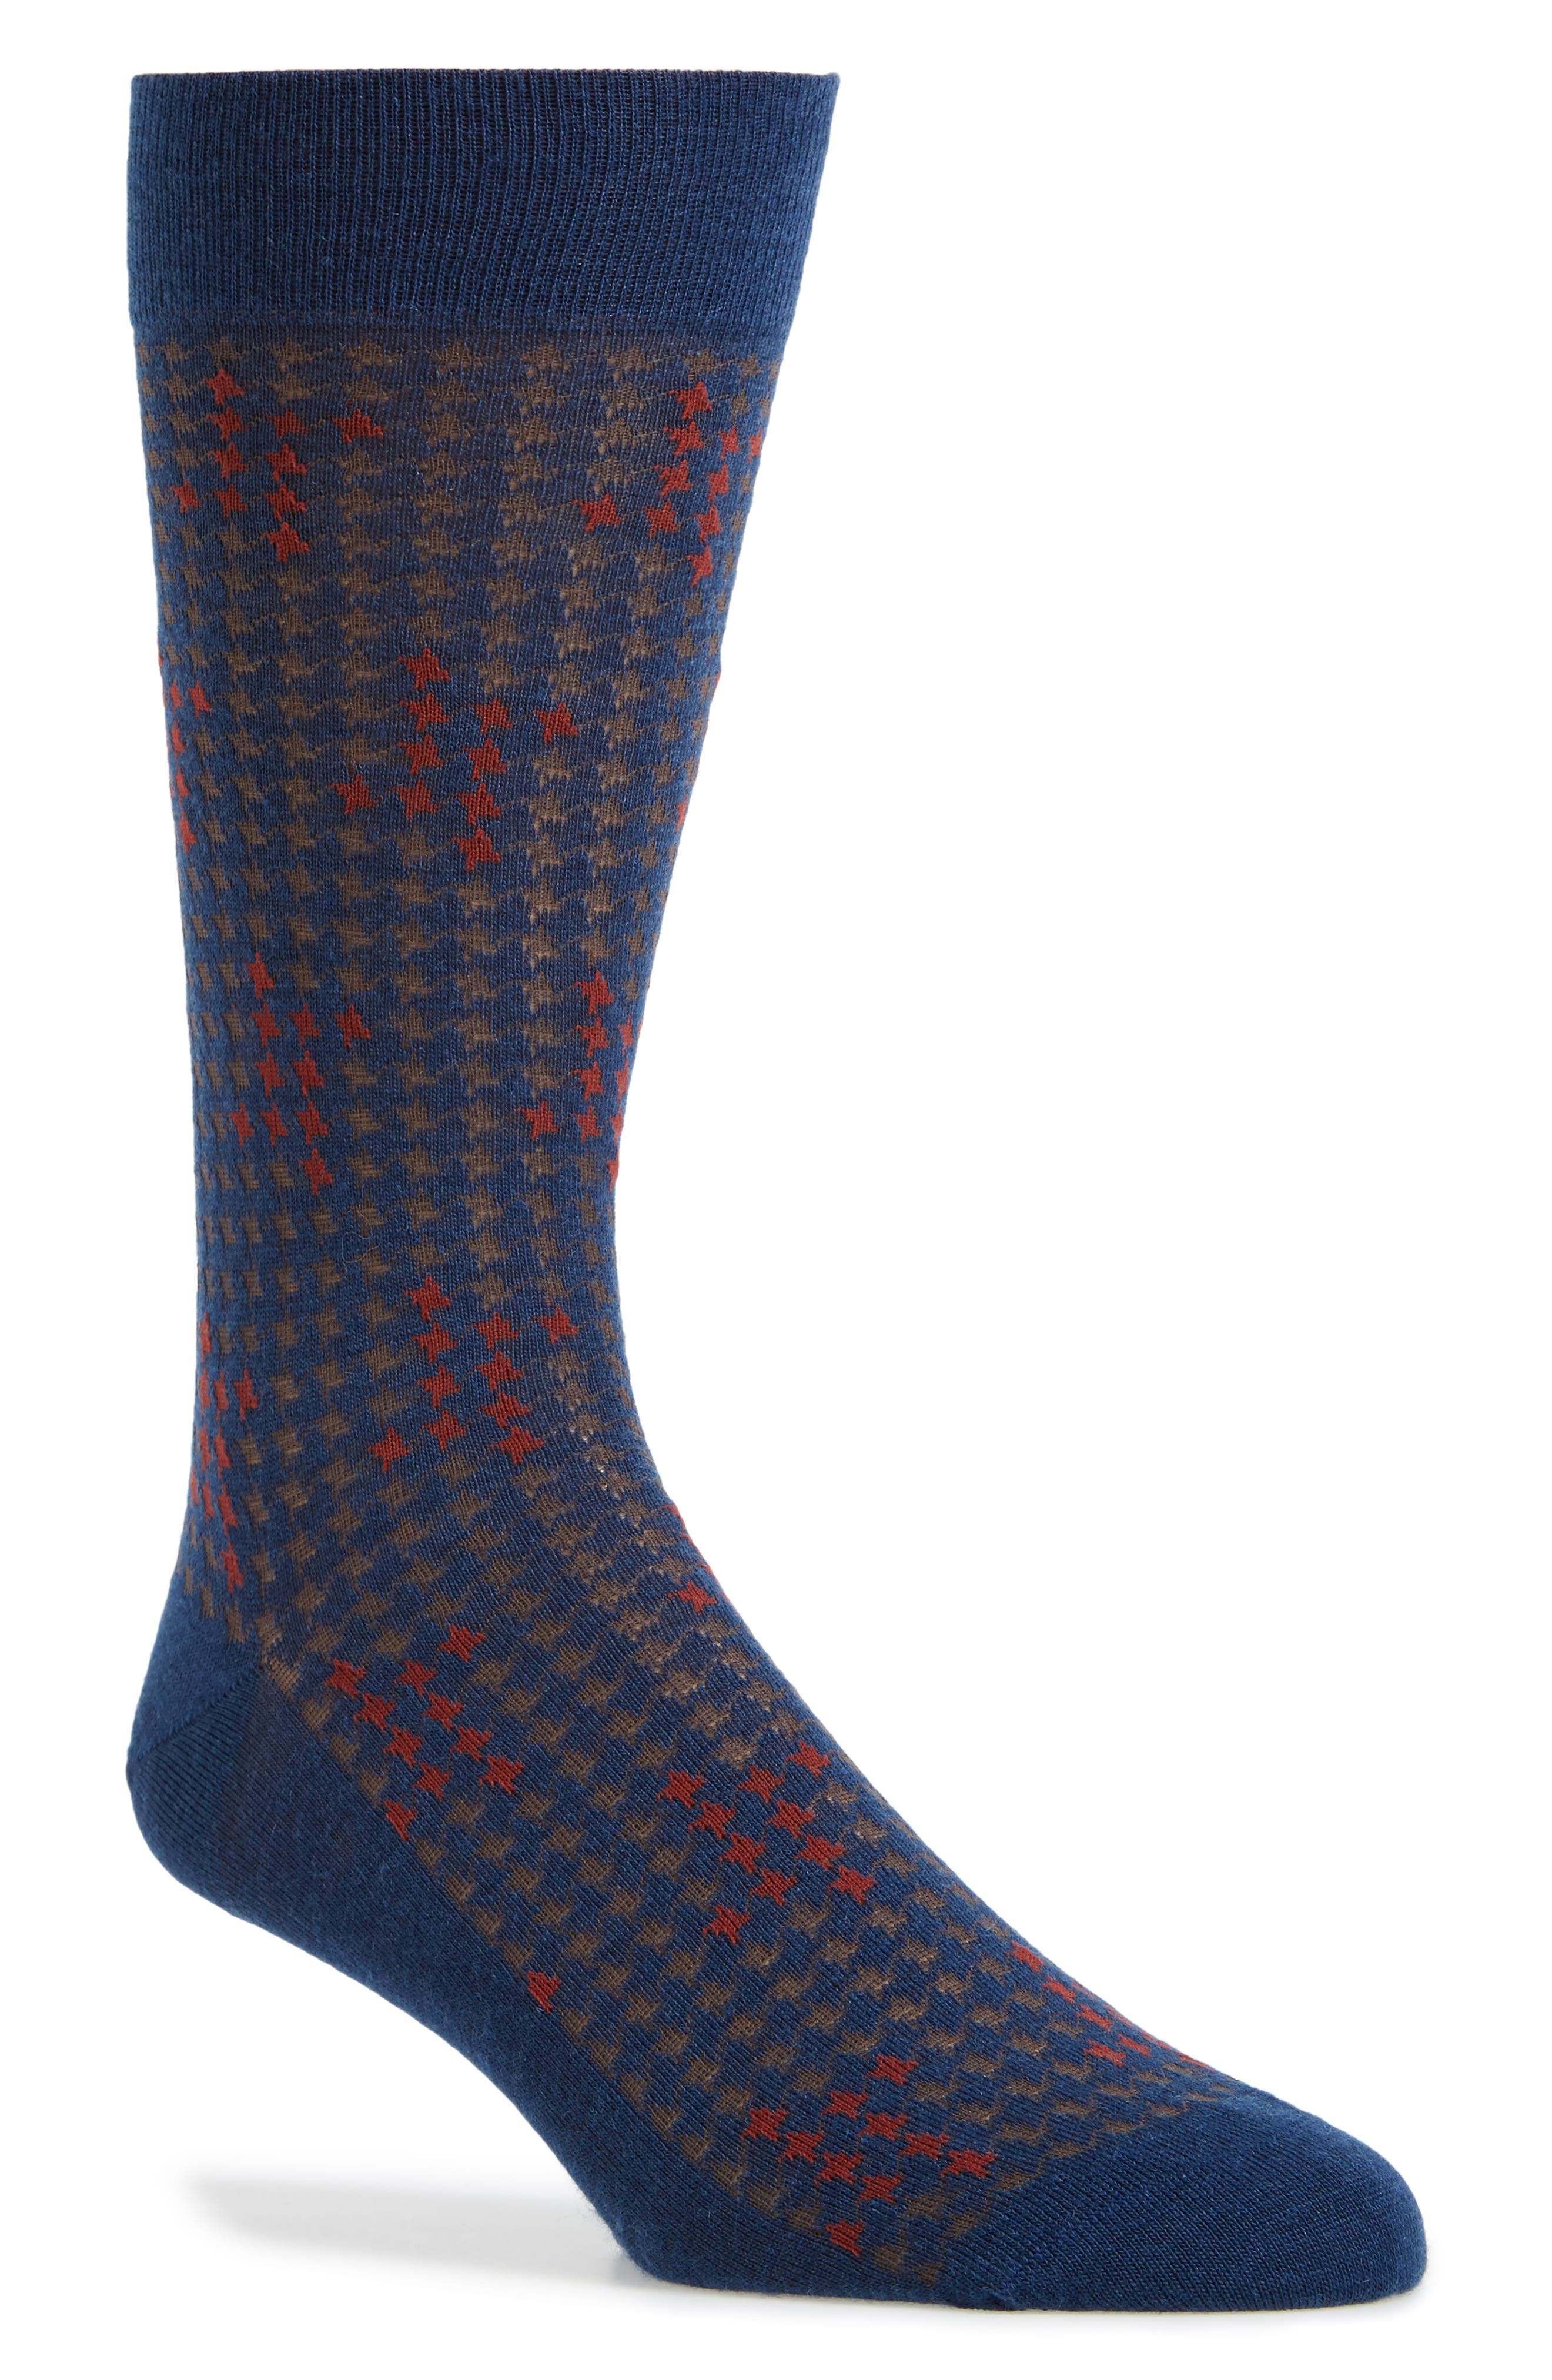 Houndstooth Socks,                             Main thumbnail 1, color,                             401